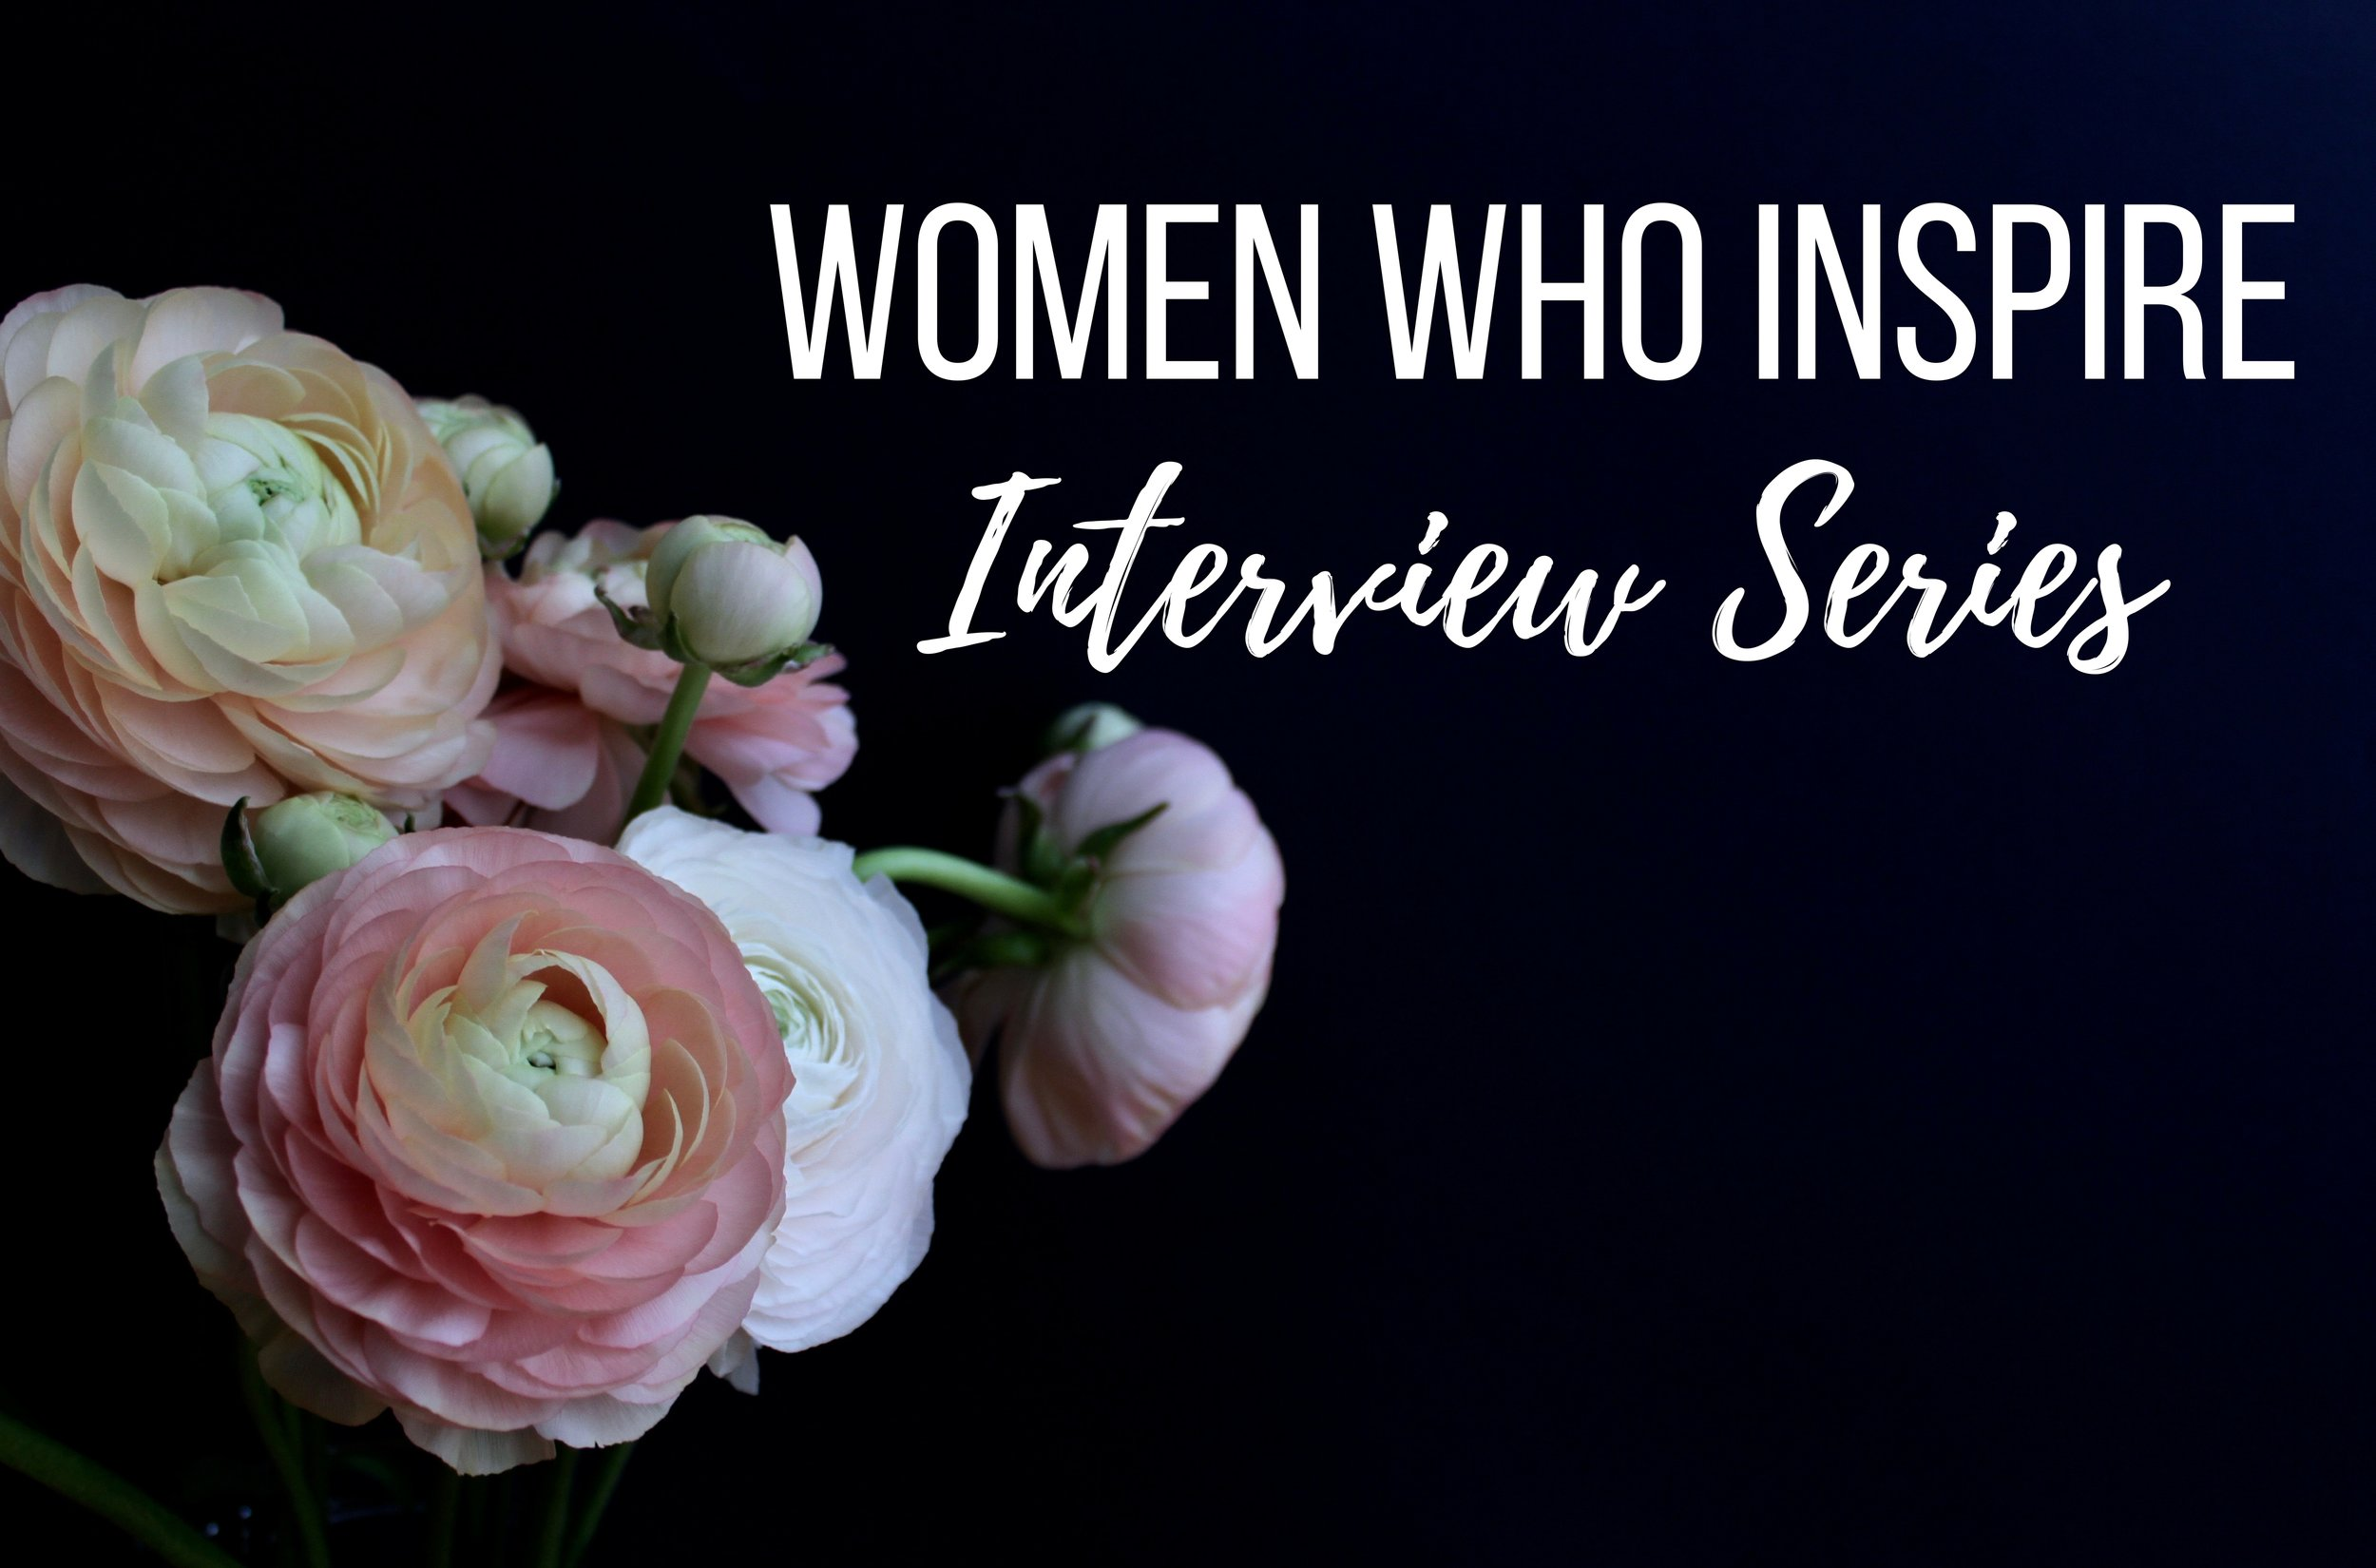 Women Who Inspire Interview Series.jpg